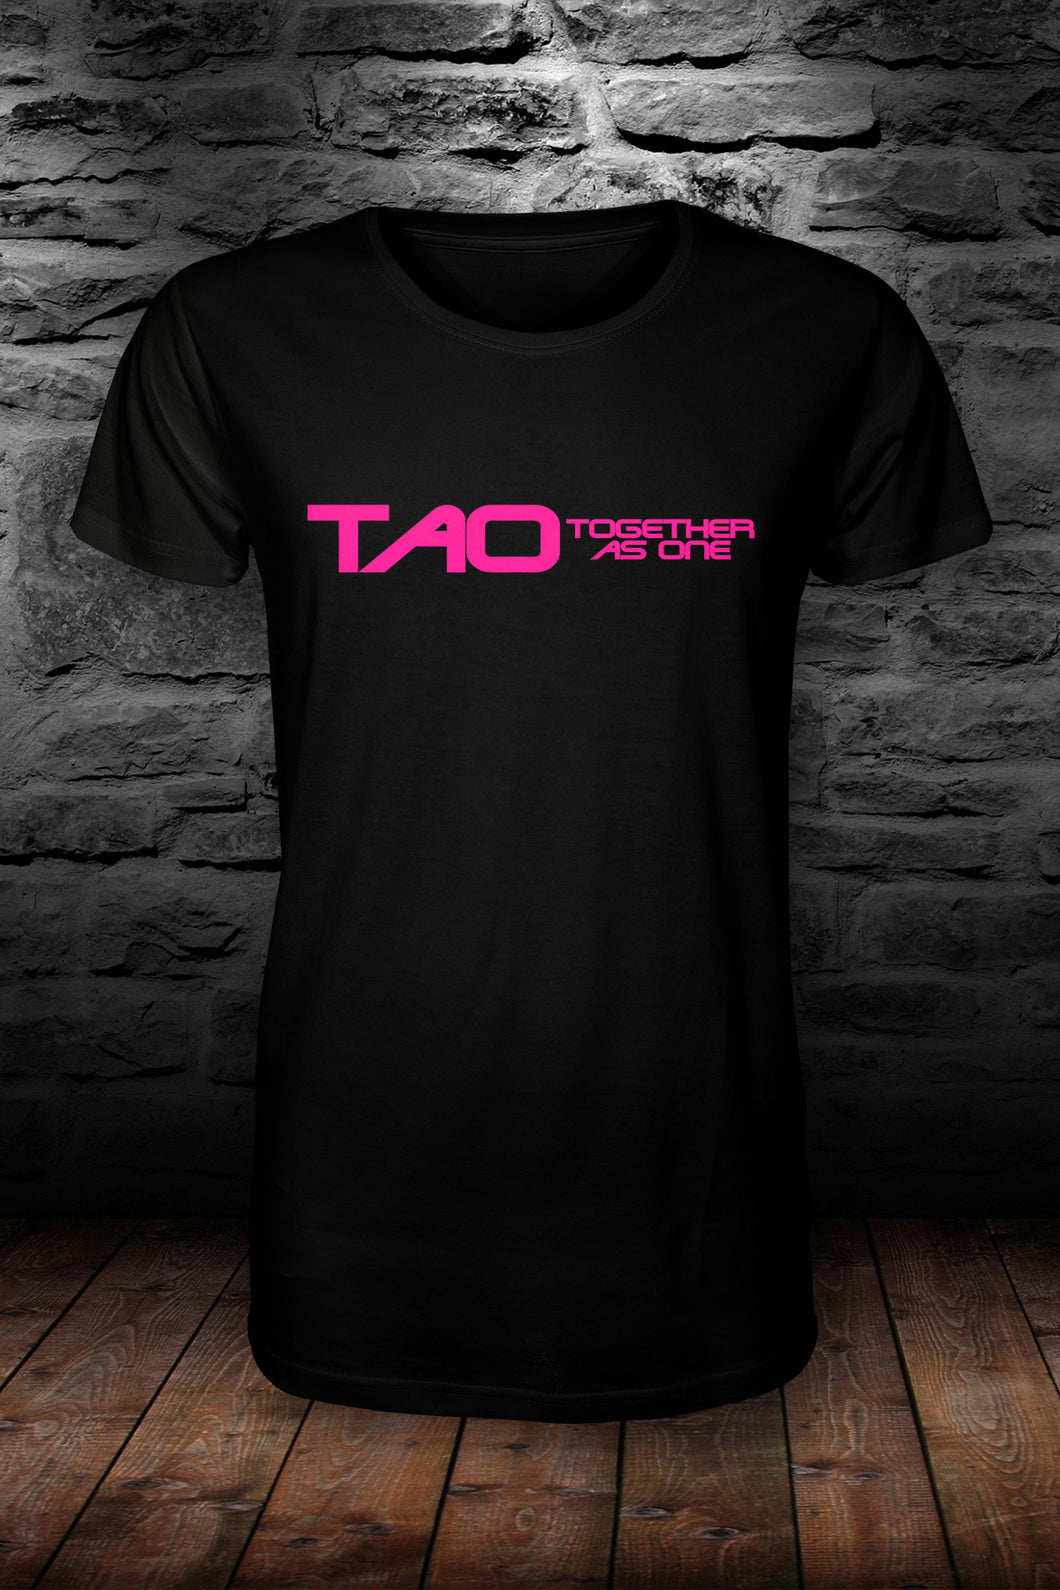 TAO - Together as one official t shirt Black & pink